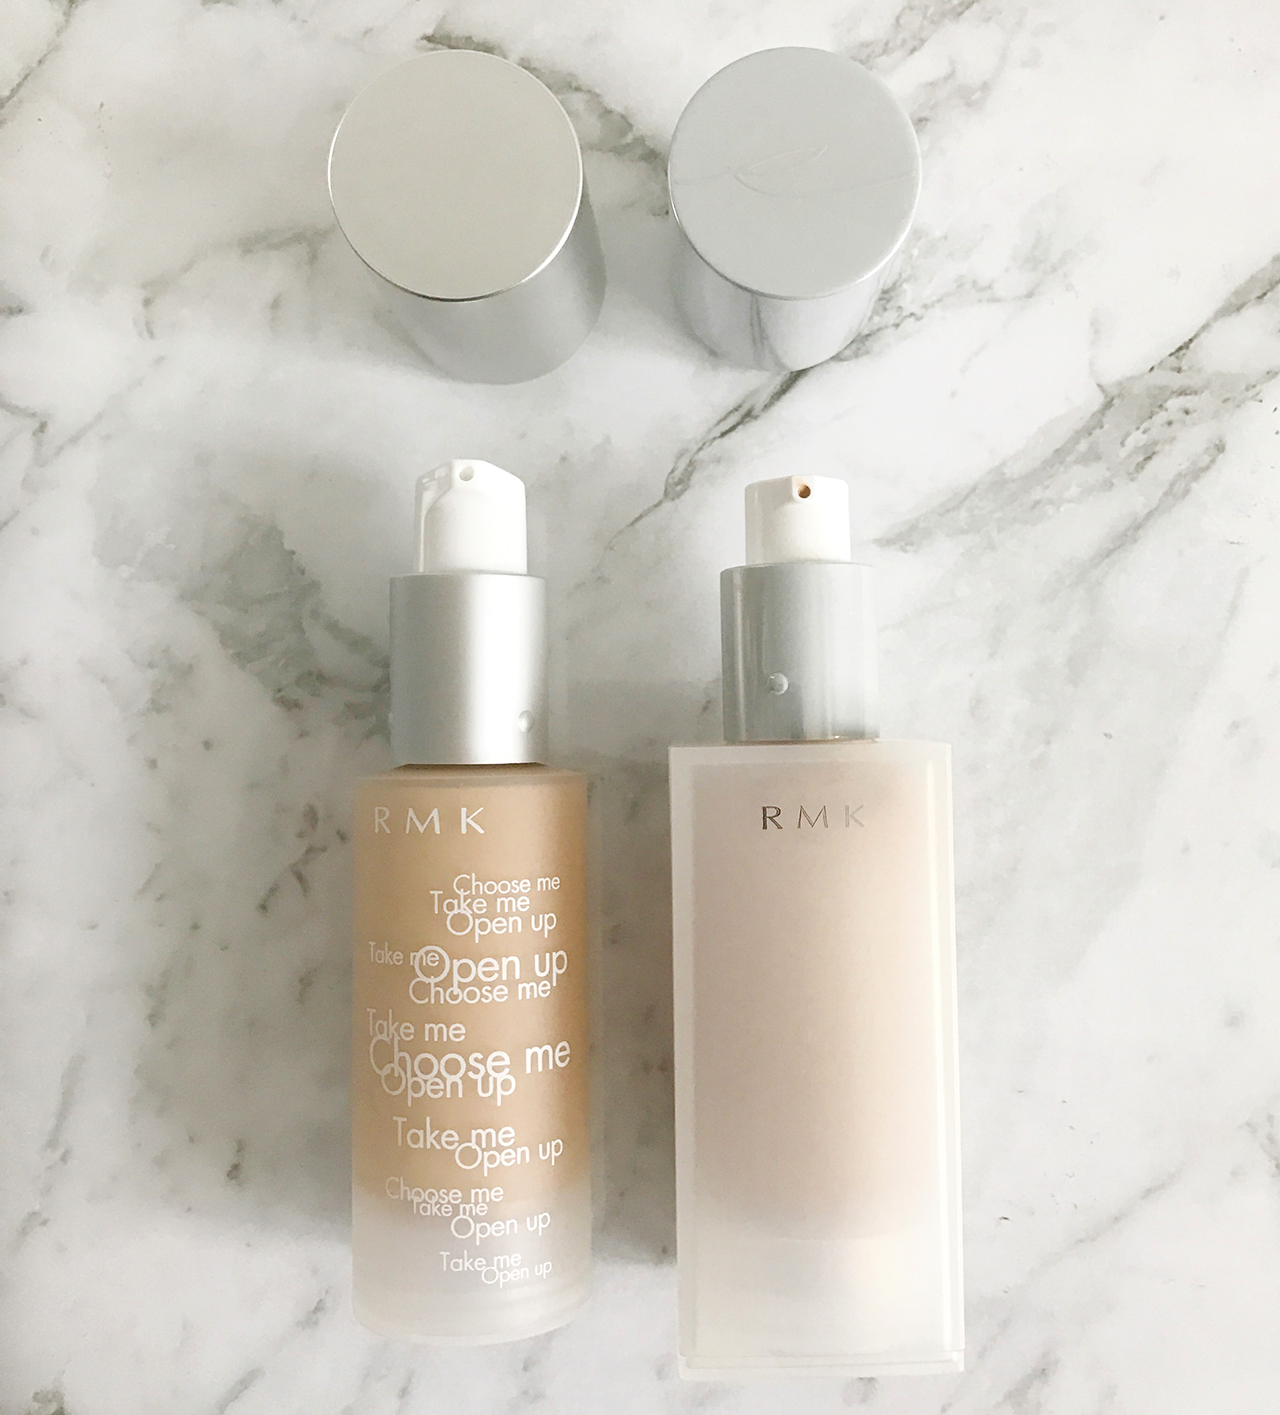 Comparison of RMK Gel Creamy Foundation packaging